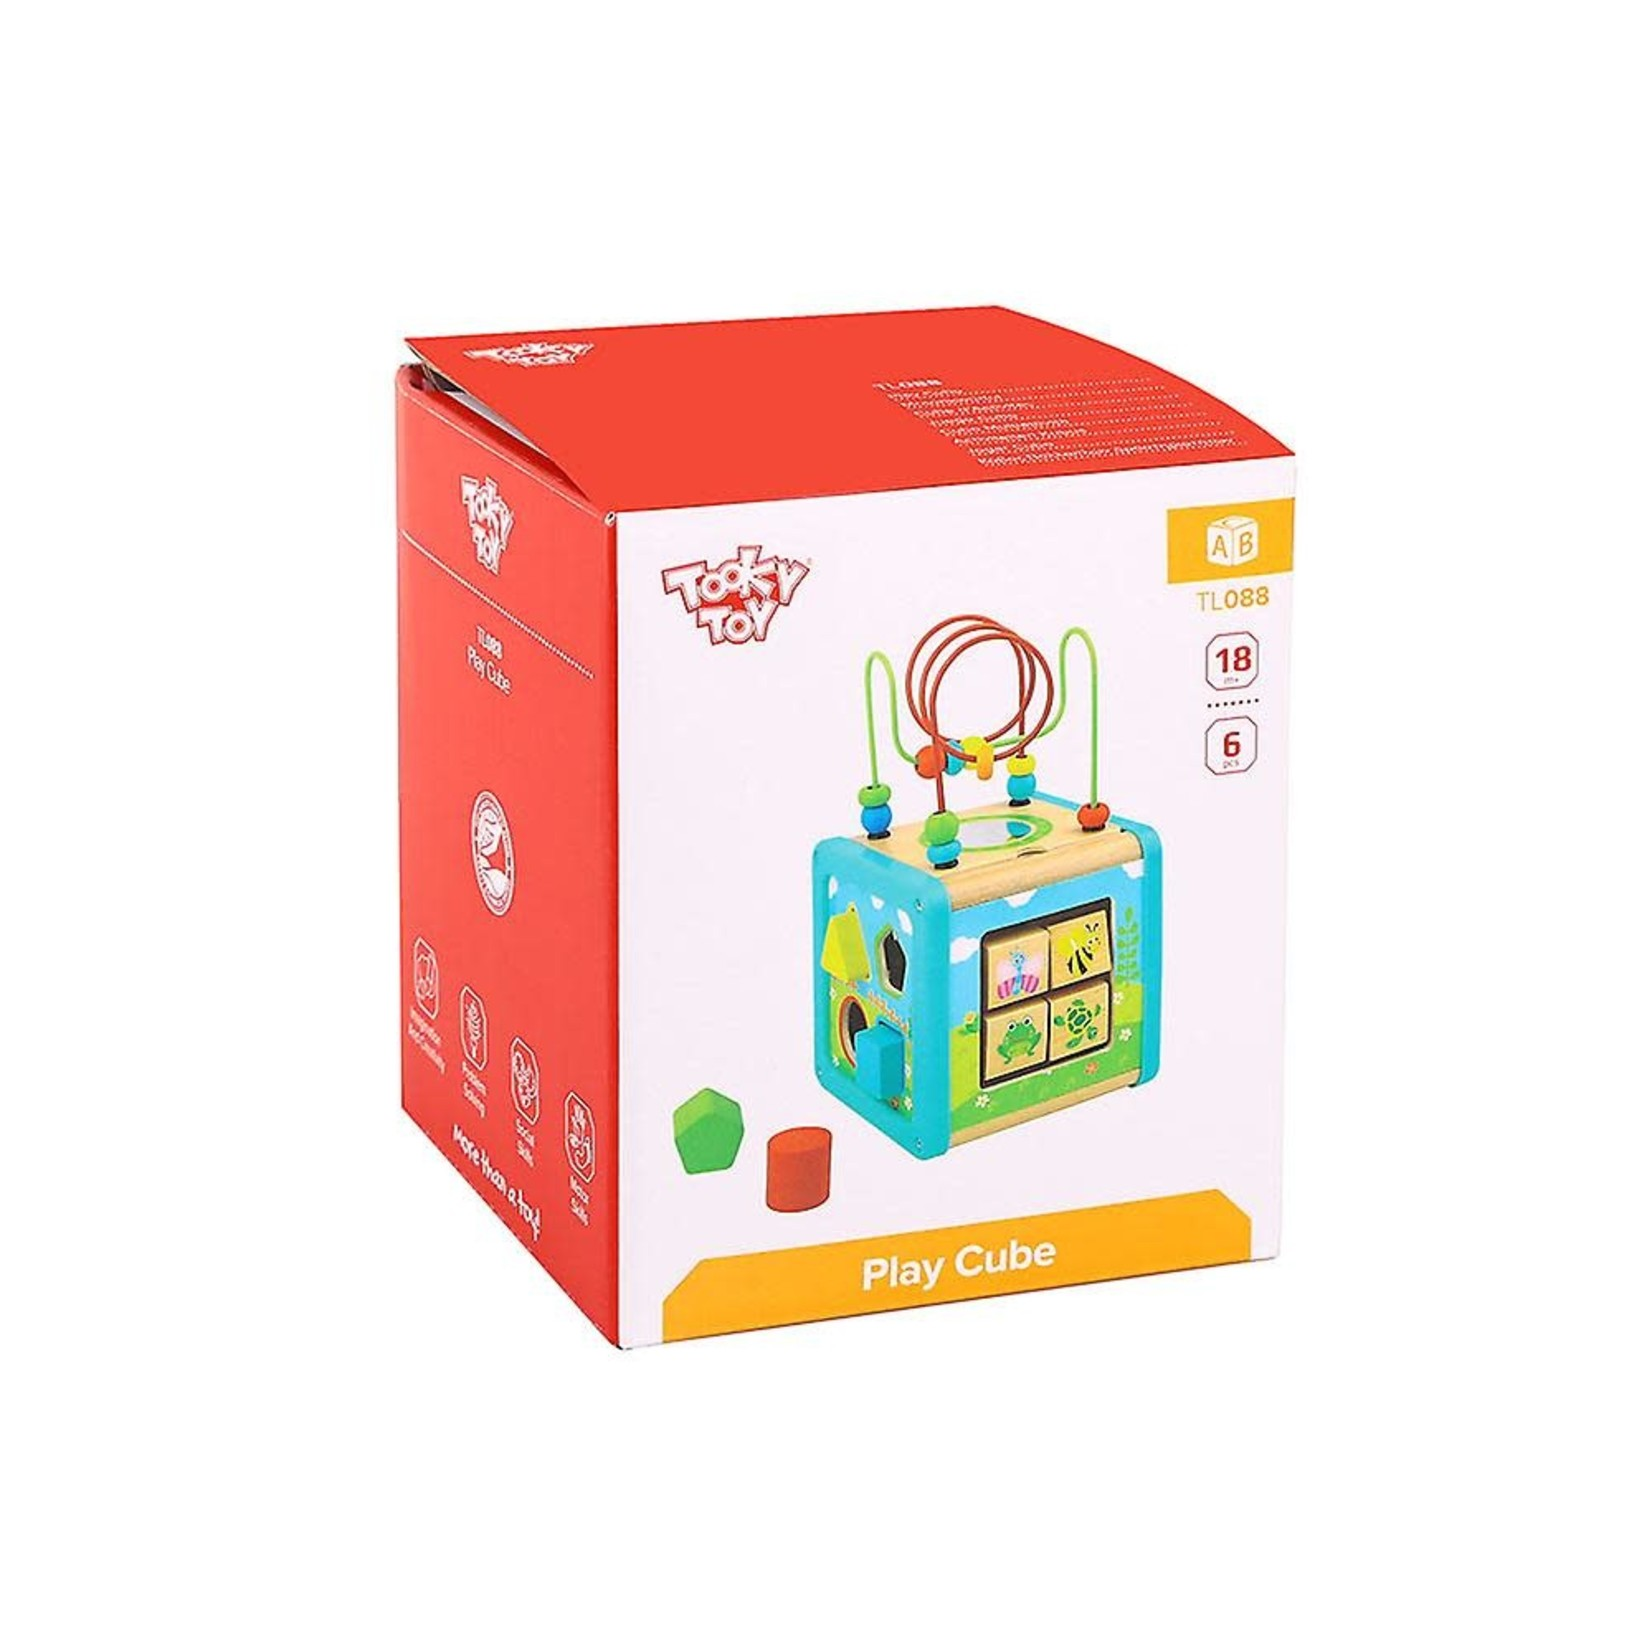 Tooky Toy Play Cube